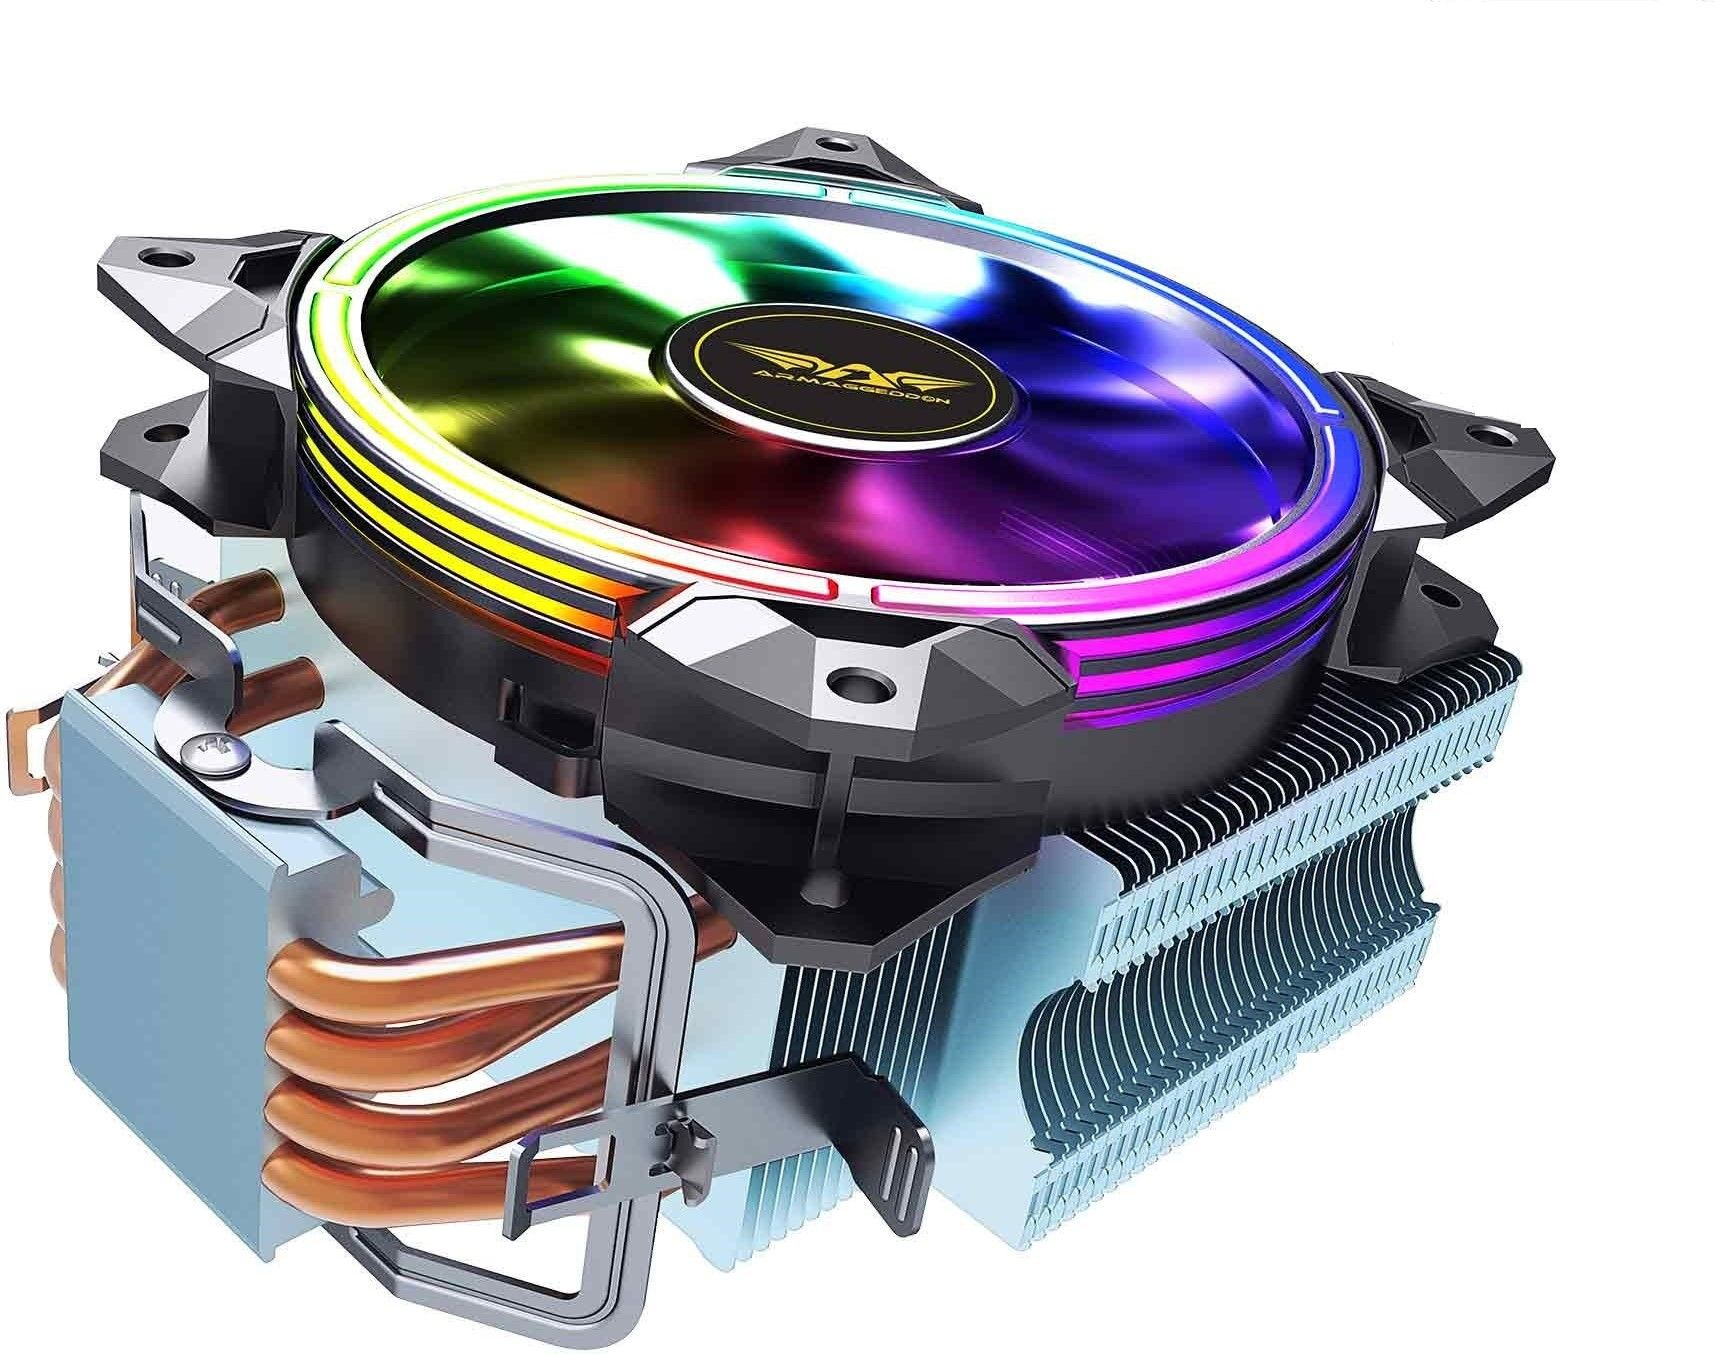 Buy Armaggeddon Artic Storm 3 Rgb R4 Cpu Cooler At Bestbuycyprus Com For 39 99 With Free Delivery Storm Cool Things To Buy Cooler